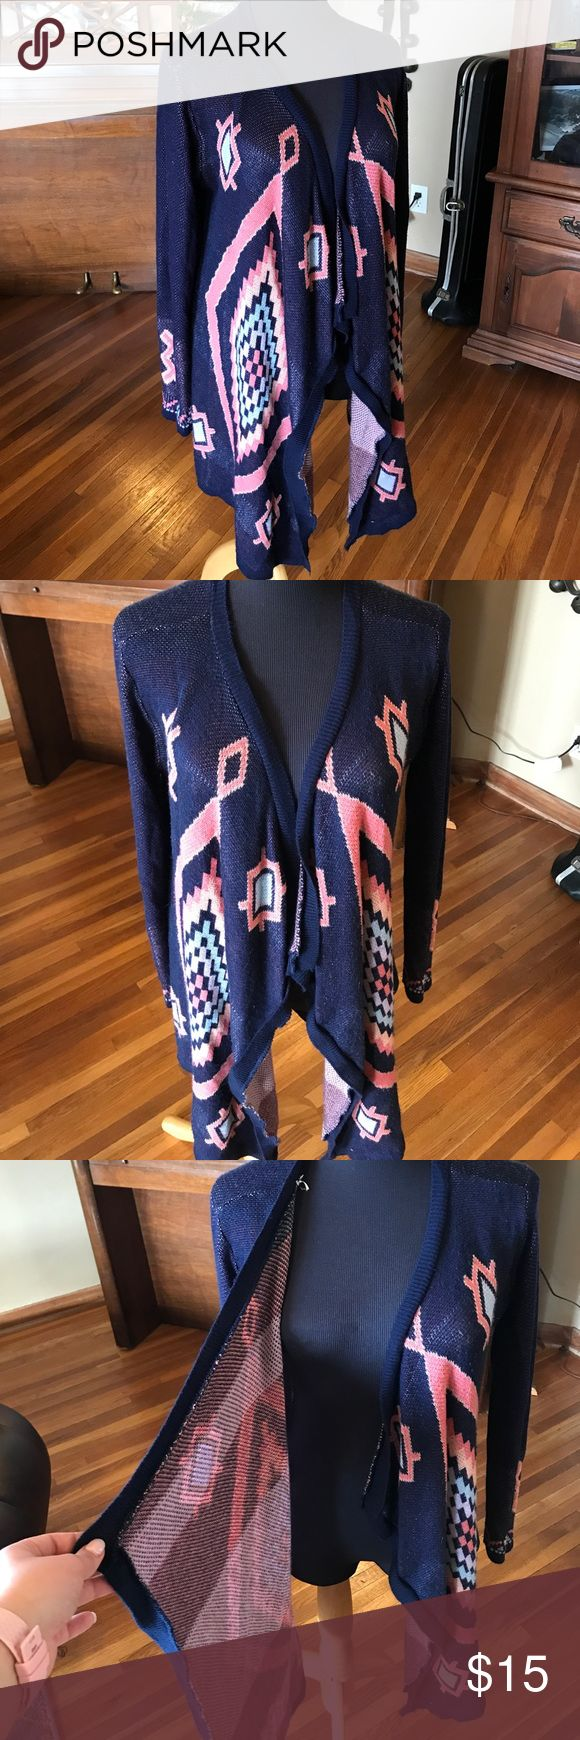 Long Draped Aztec Print Cardigan Gorgeous, long draped cardigan.  No buttons or ties. Navy blue and coral mostly. No discernible flaws, but there are some slight are of pilling die to the fabric type. Overall, great condition. Size large. Say What? Sweaters